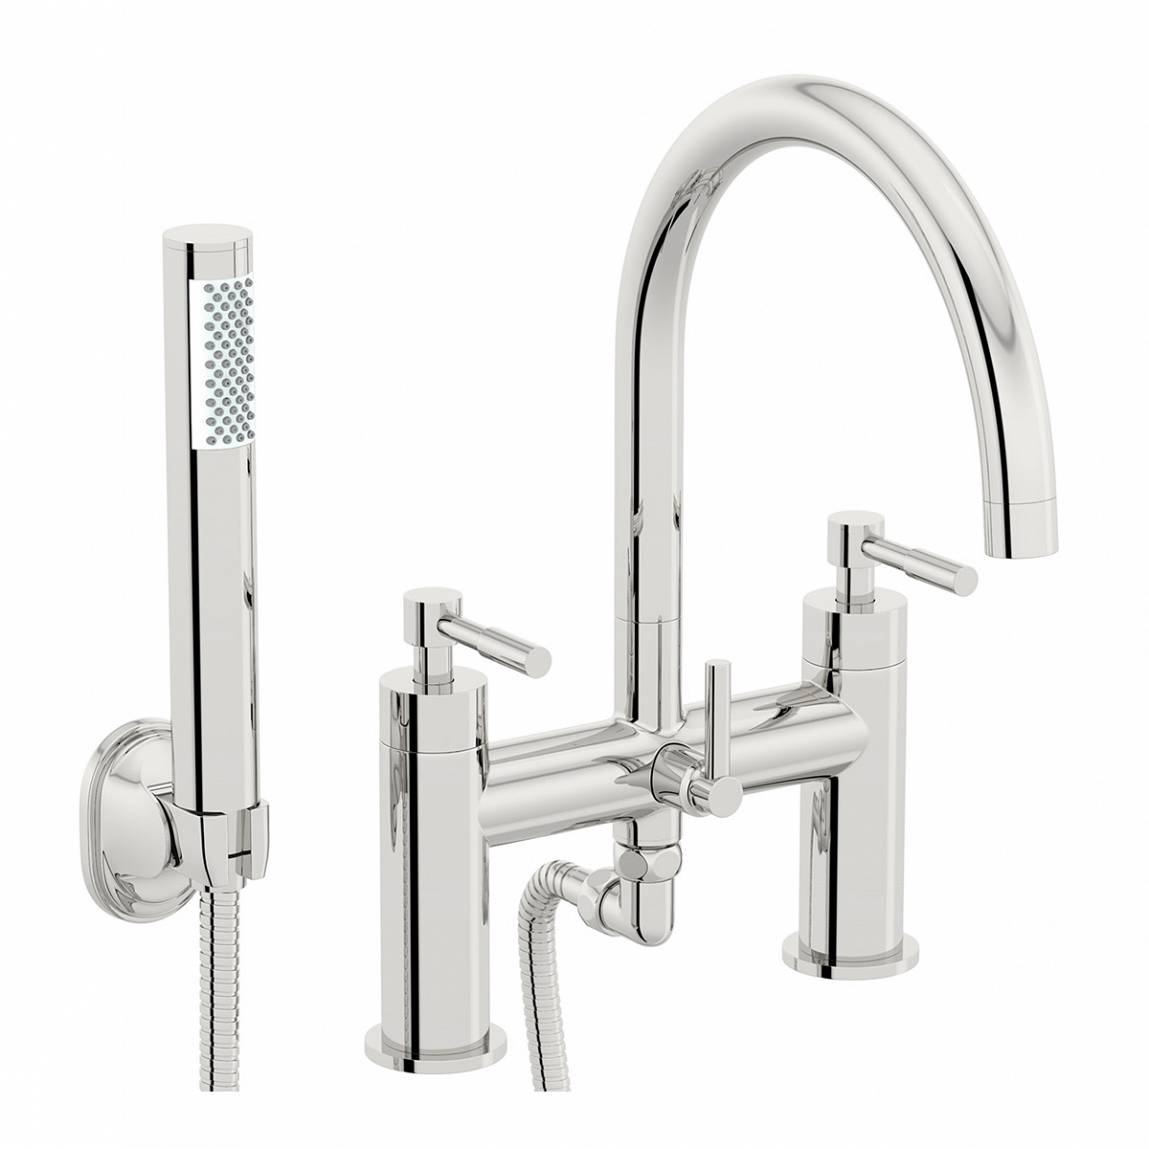 Image of Secta Bath Shower Mixer